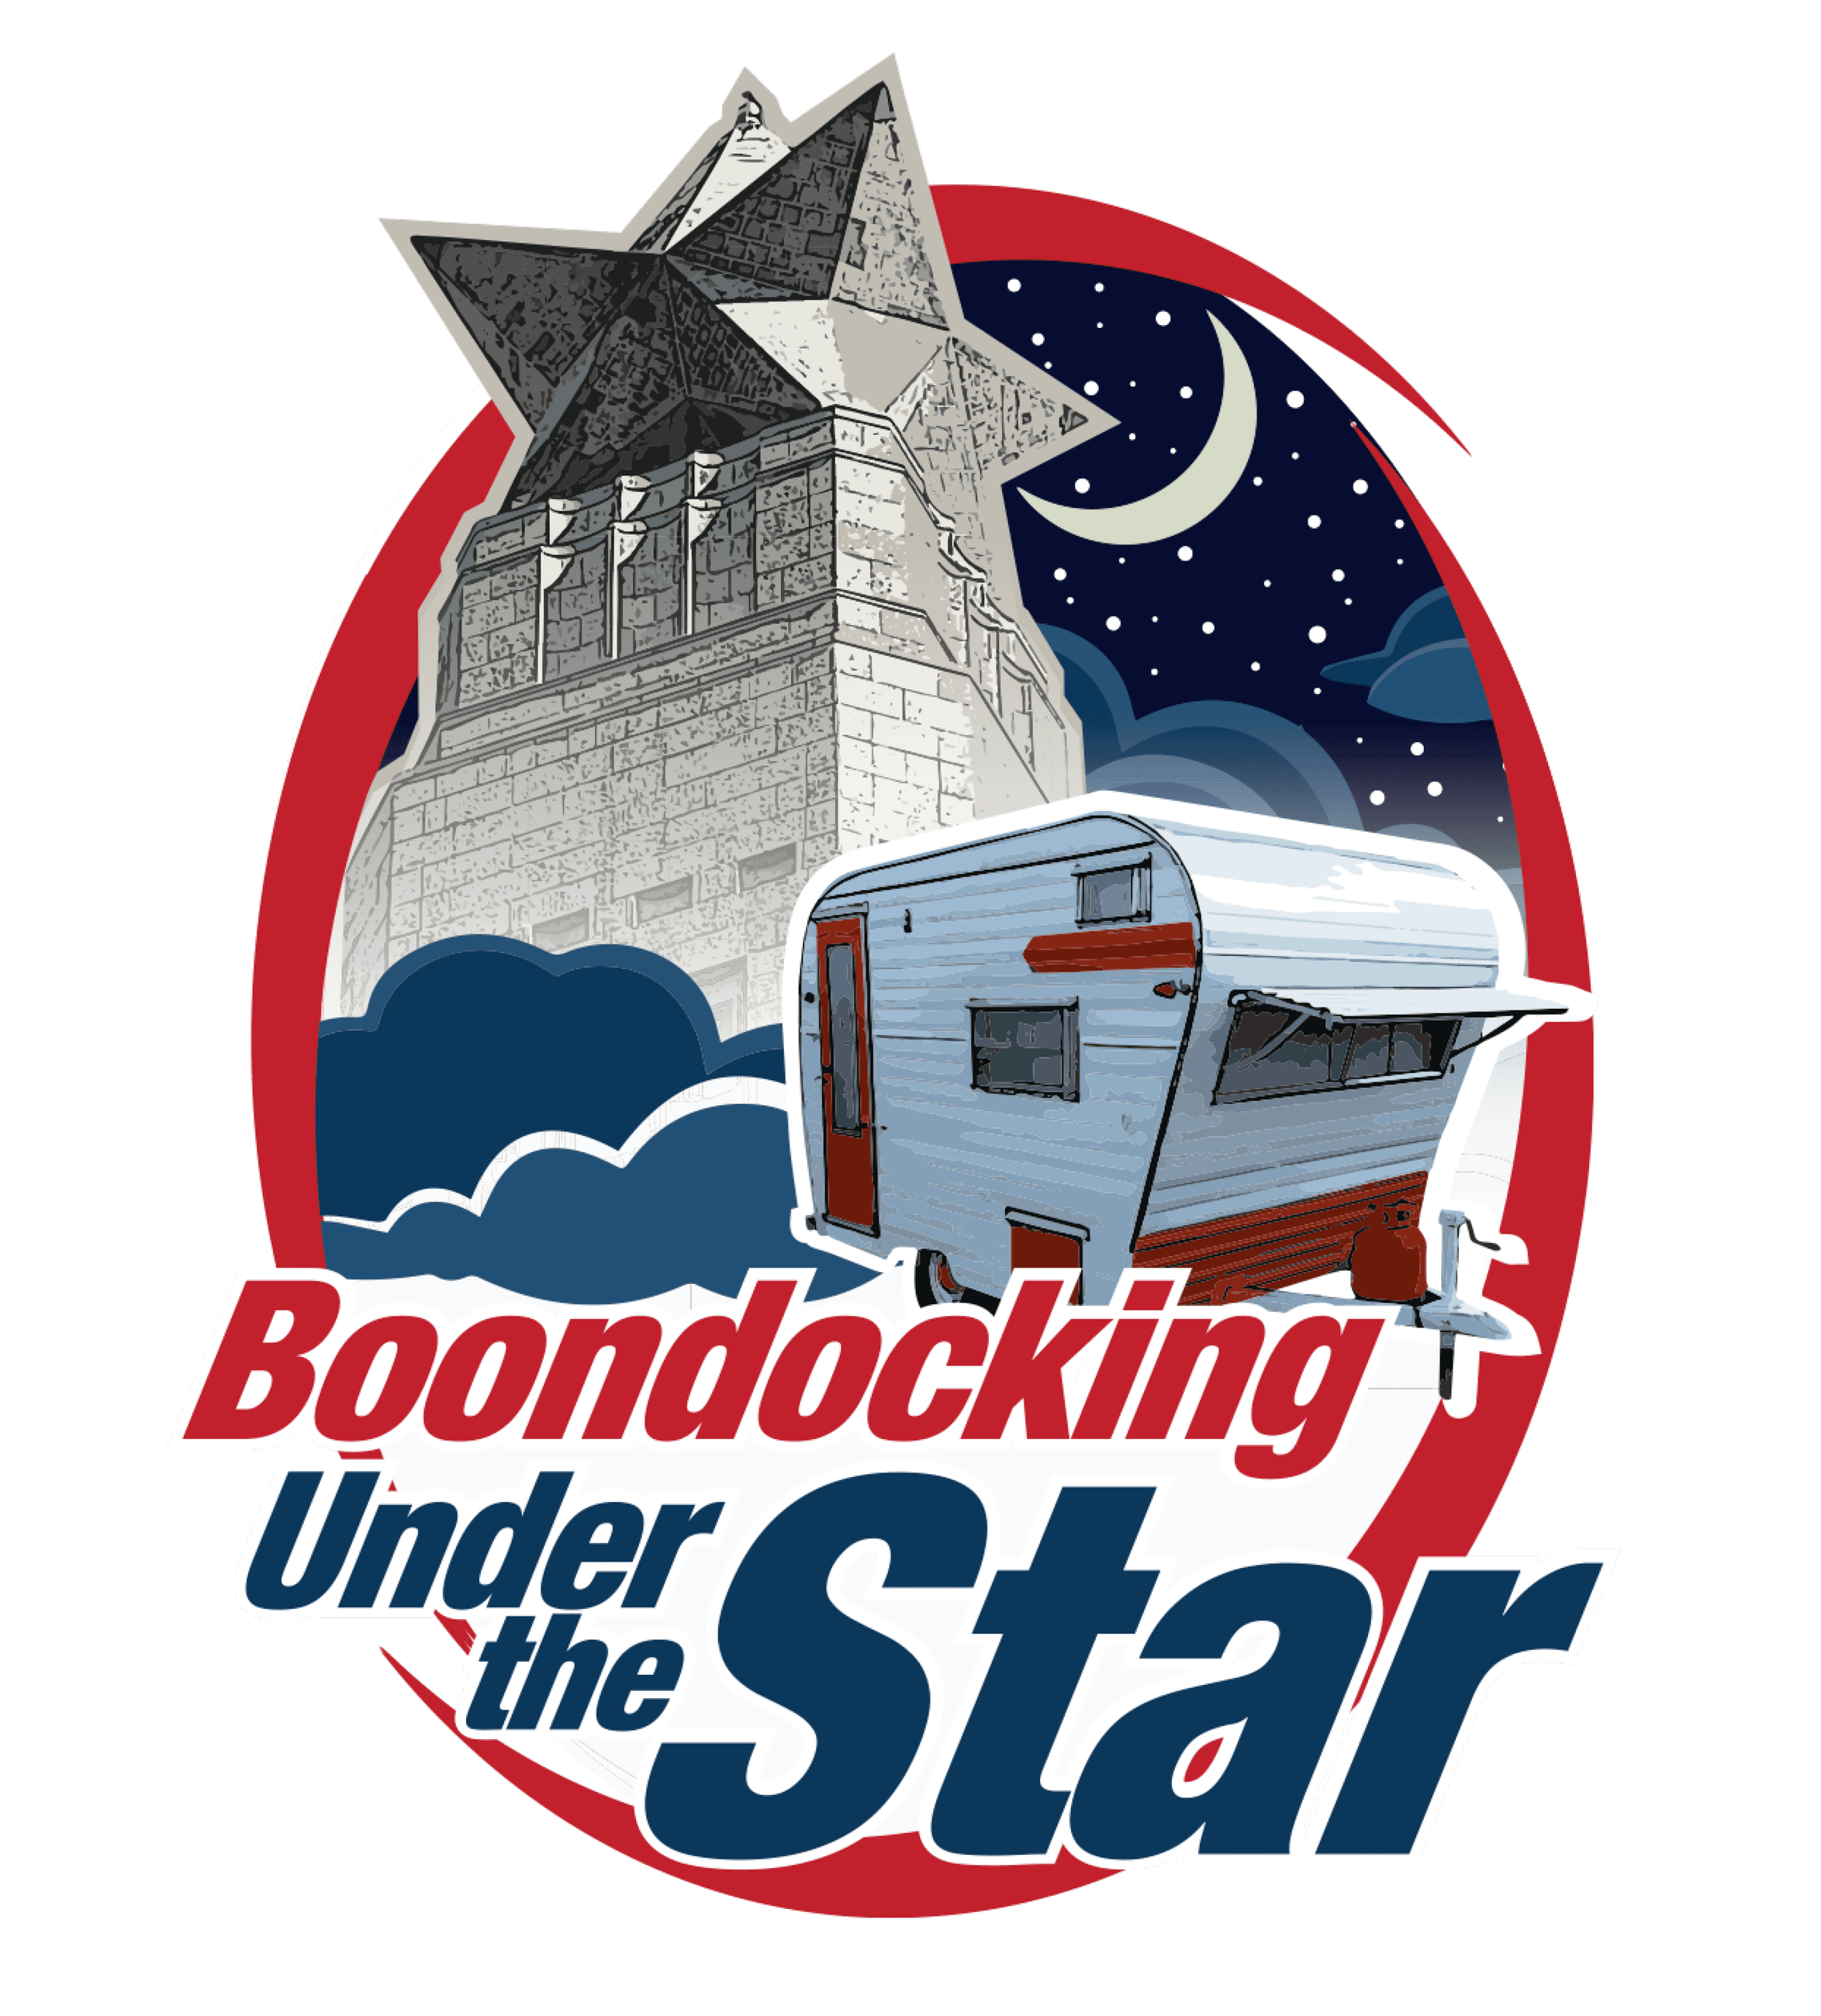 Boondocking Under the Star